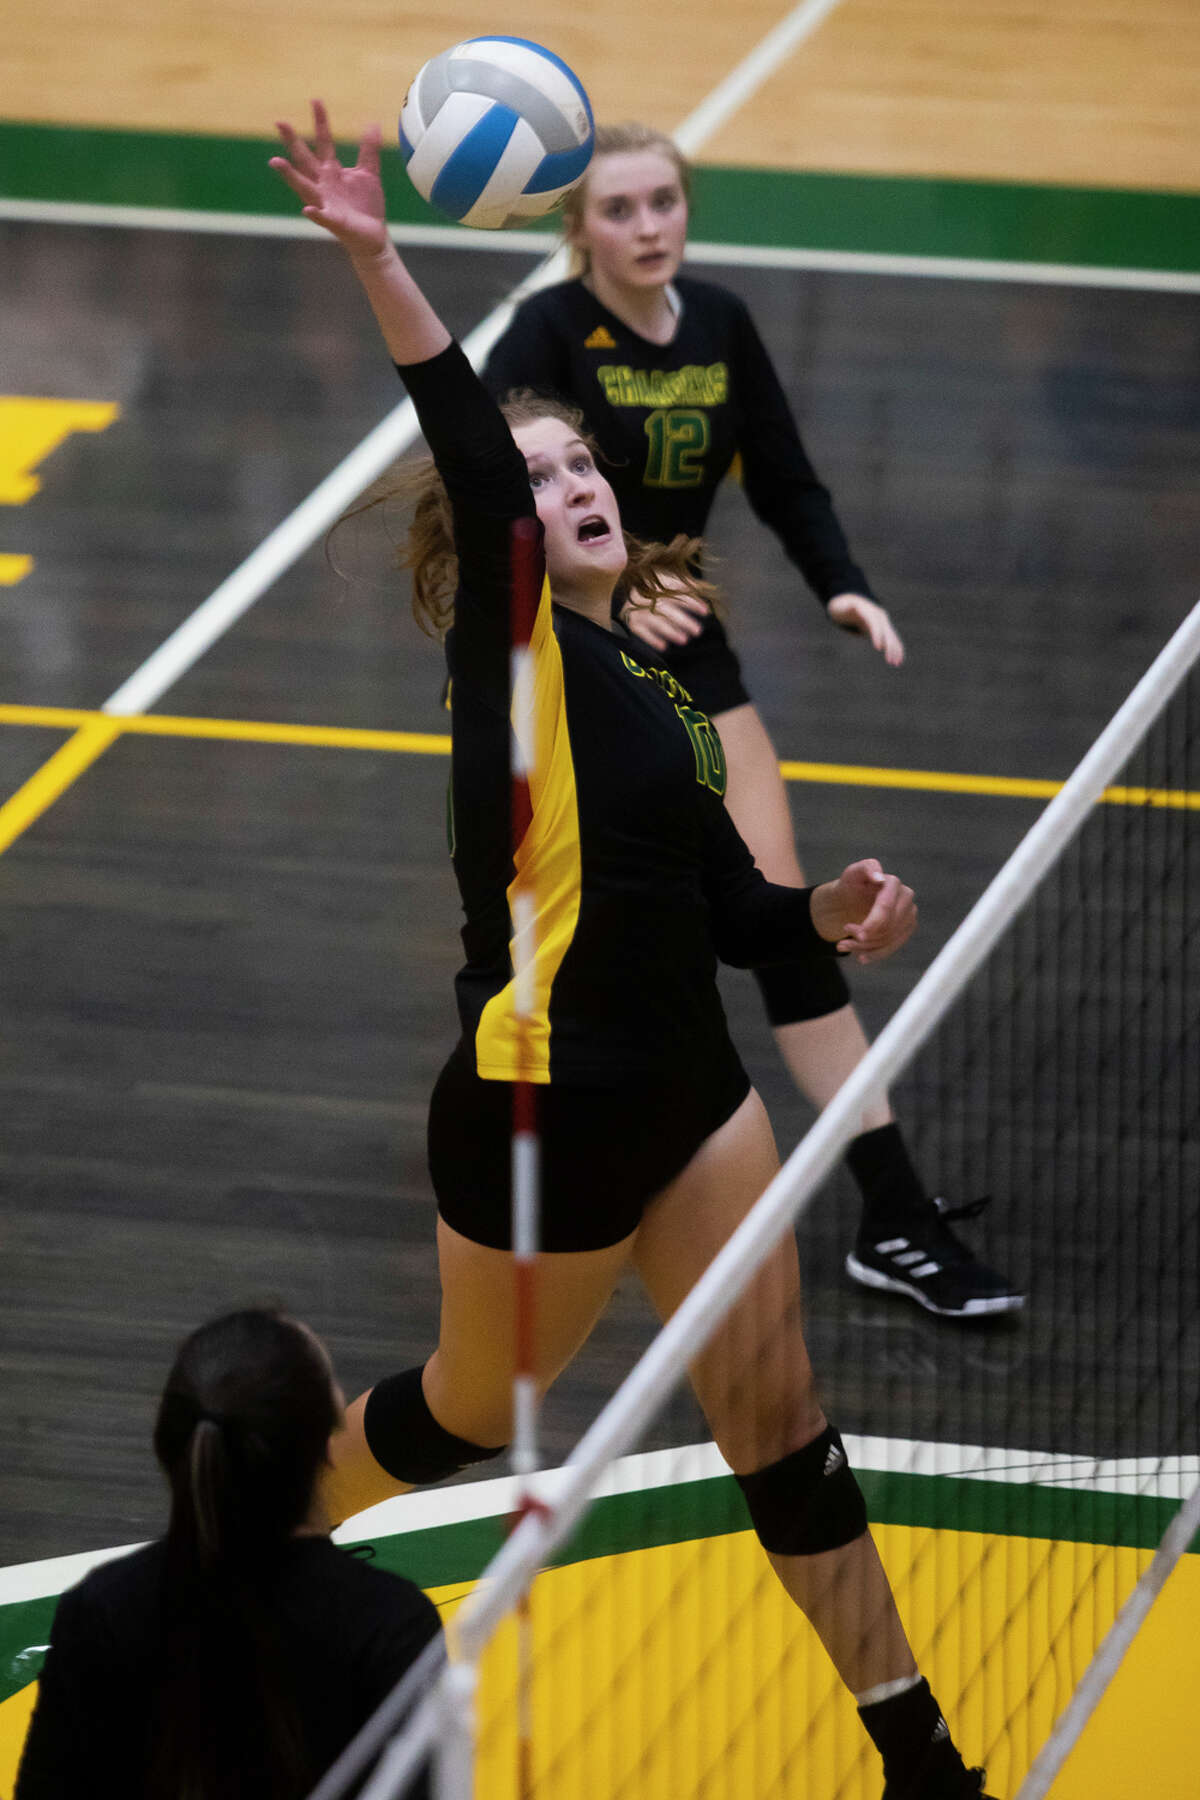 Dow's Jessica Erickson spikes the ball during the Chargers' match against Flint Powers Thursday, Sept. 30, 2021 at H. H. Dow High School. (Katy Kildee/kkildee@mdn.net)